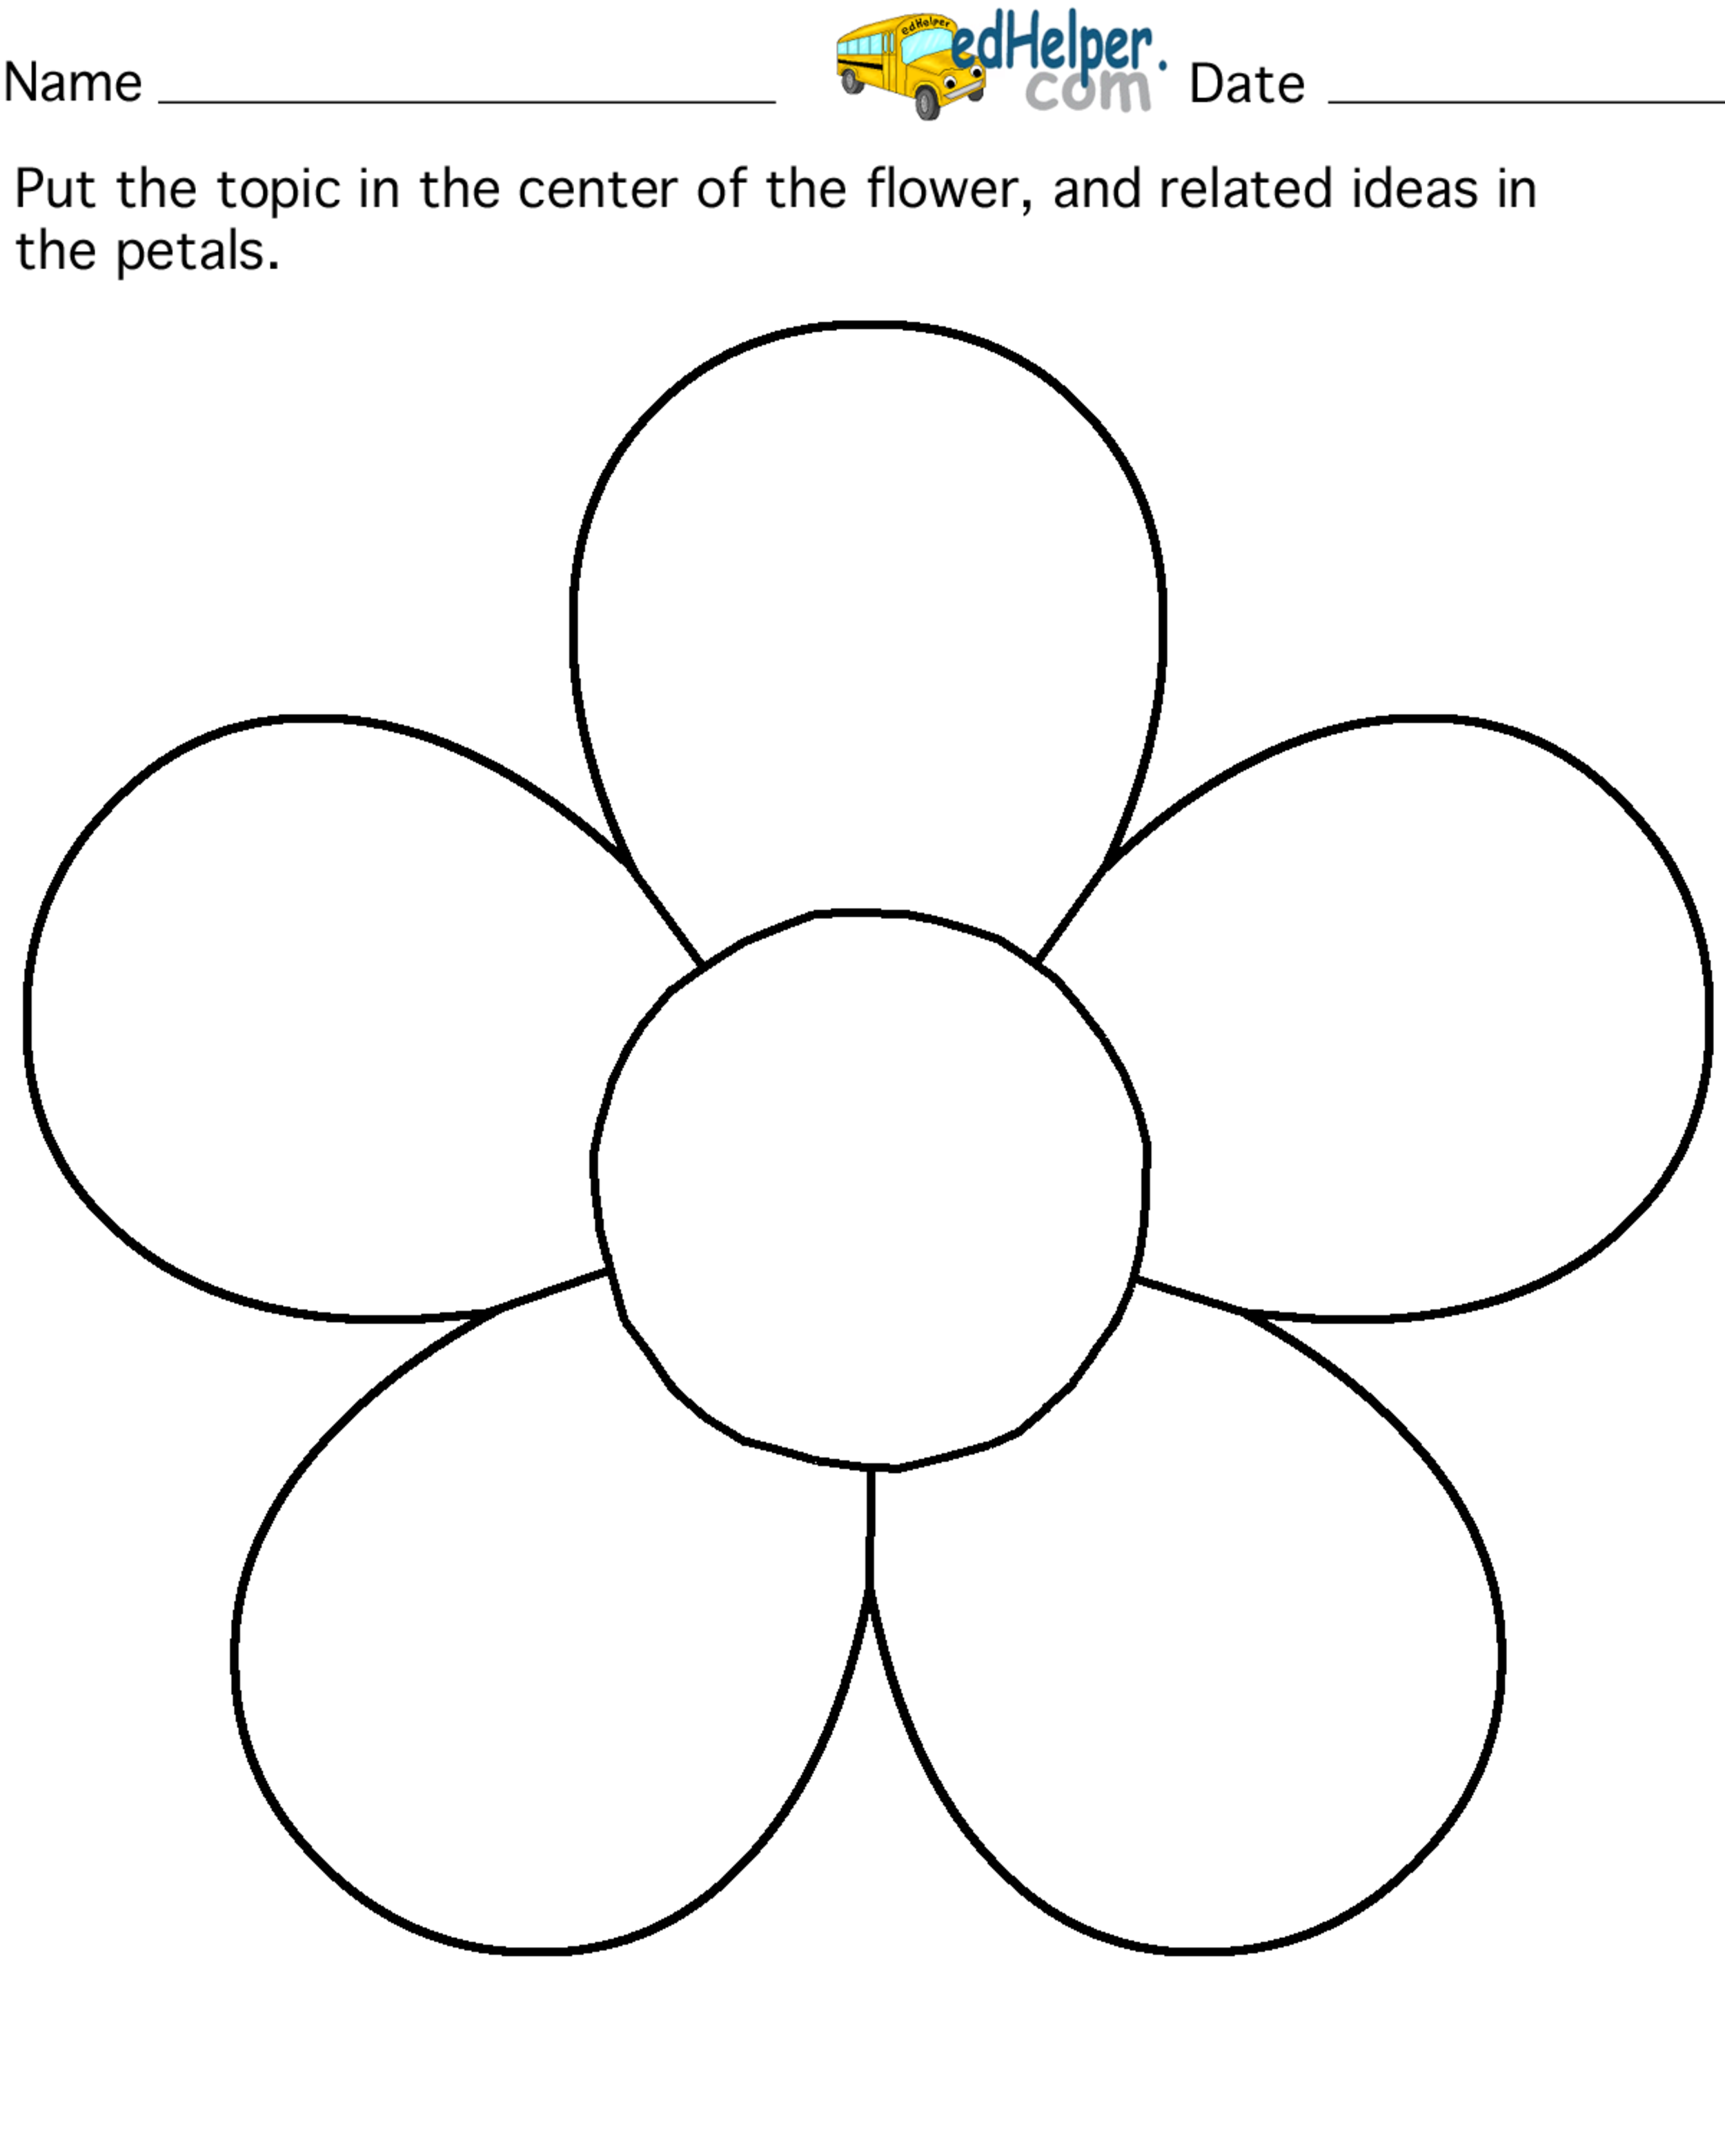 Petals coloring #4, Download drawings